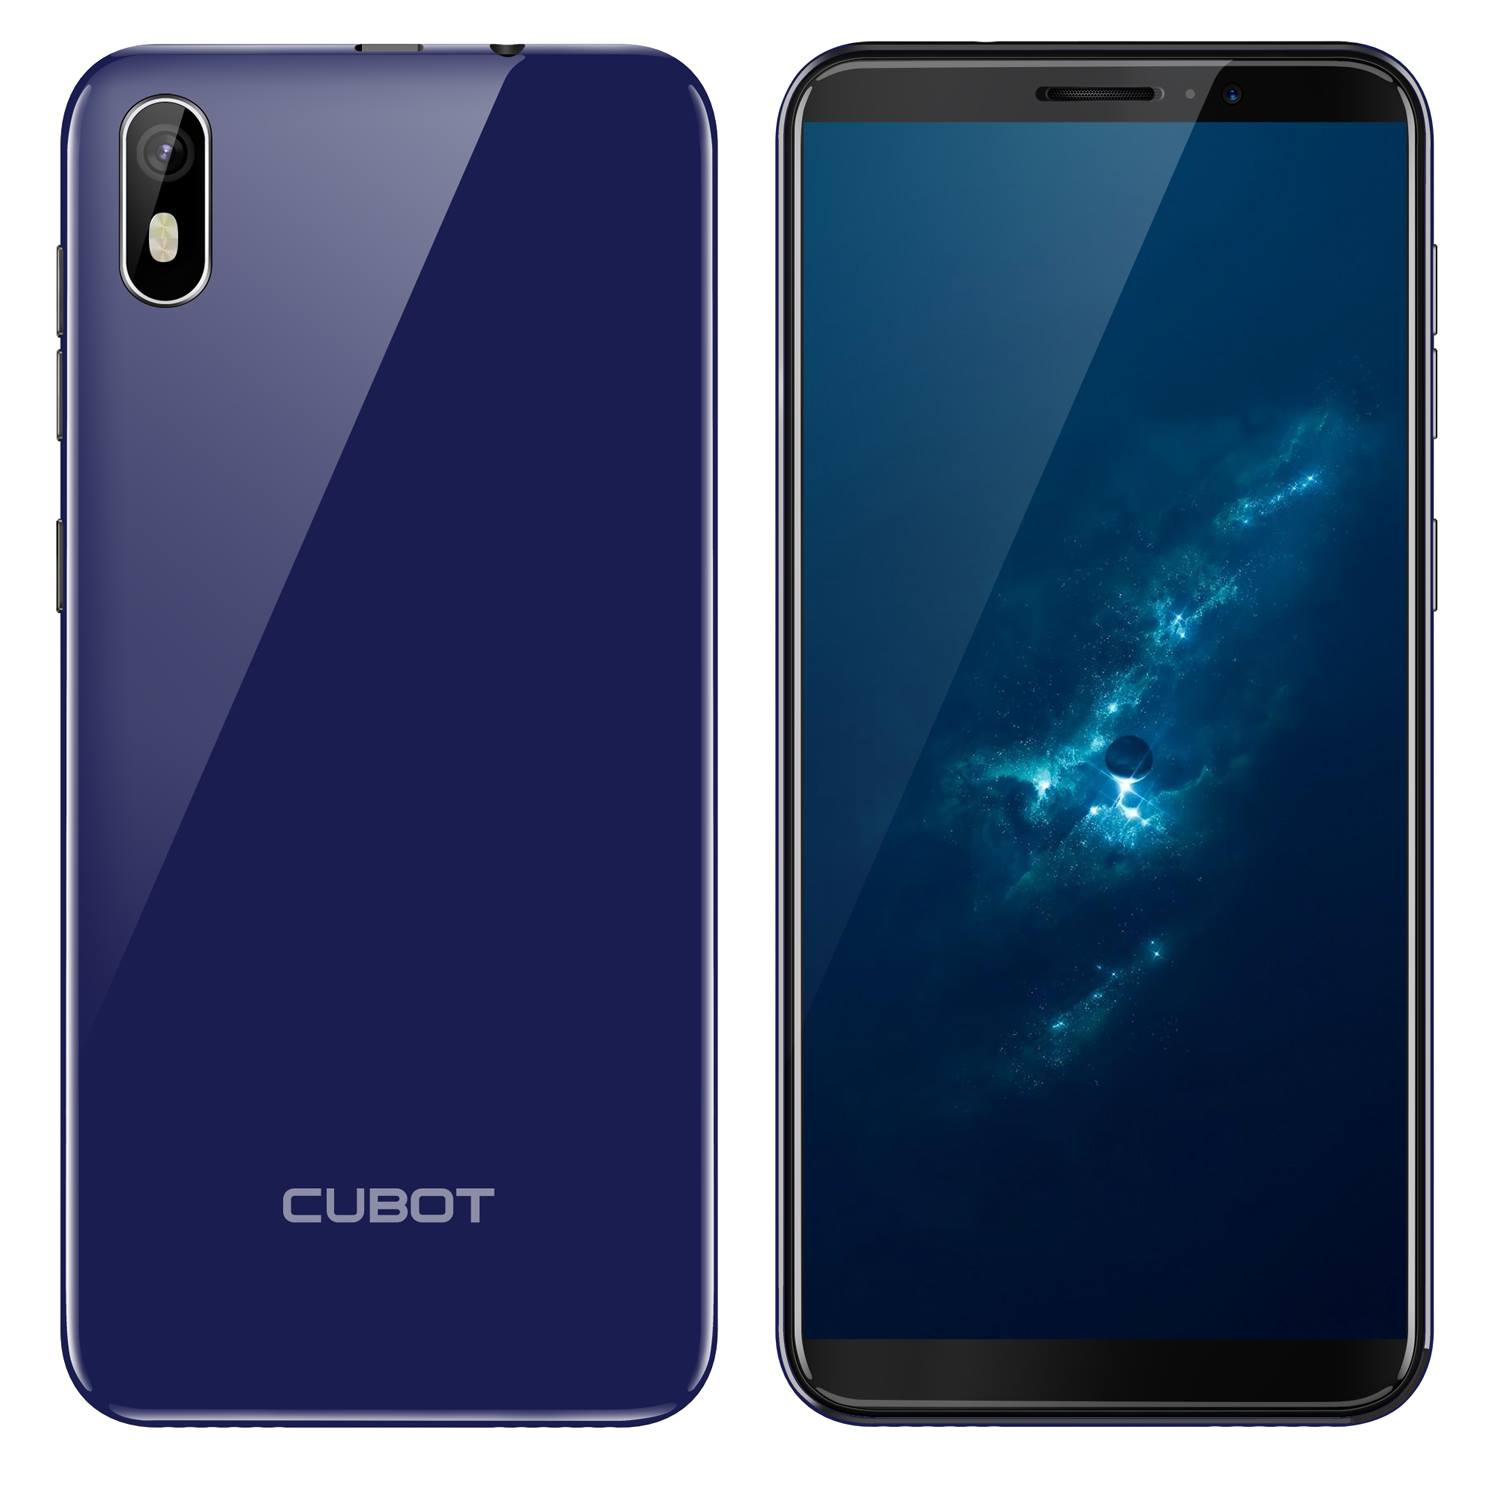 To celebrate Cubot official joins Jumia, selling Cubot J5 at half of price.  Kenya Only!